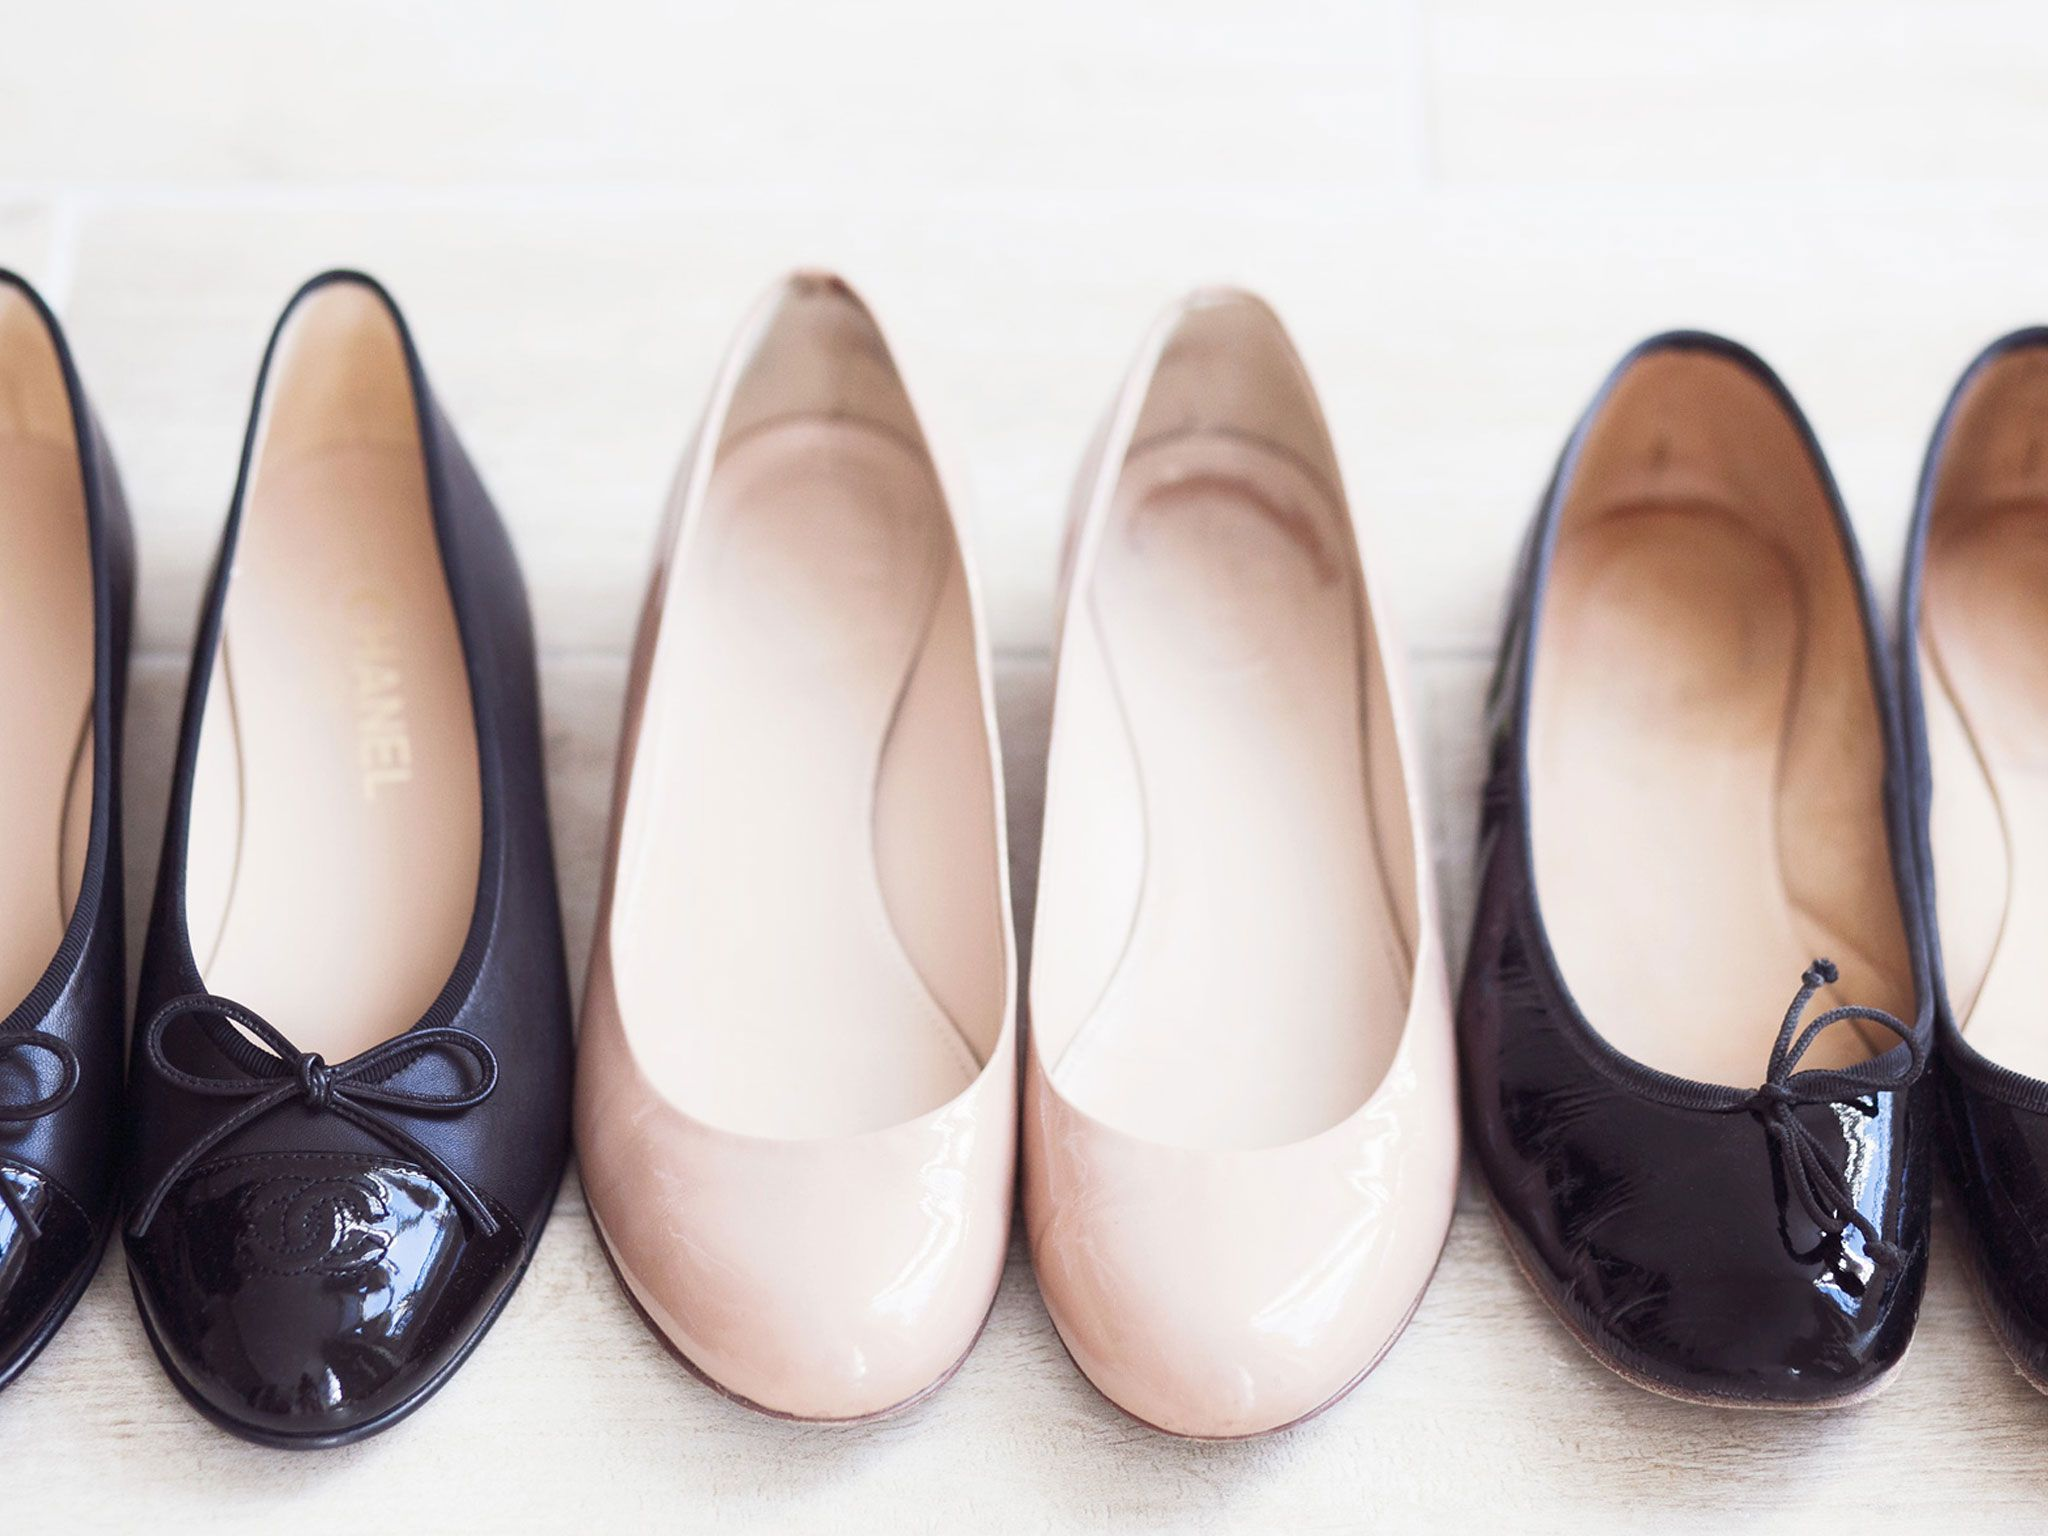 Flats or Heels The Surprising Way French Girls Decide